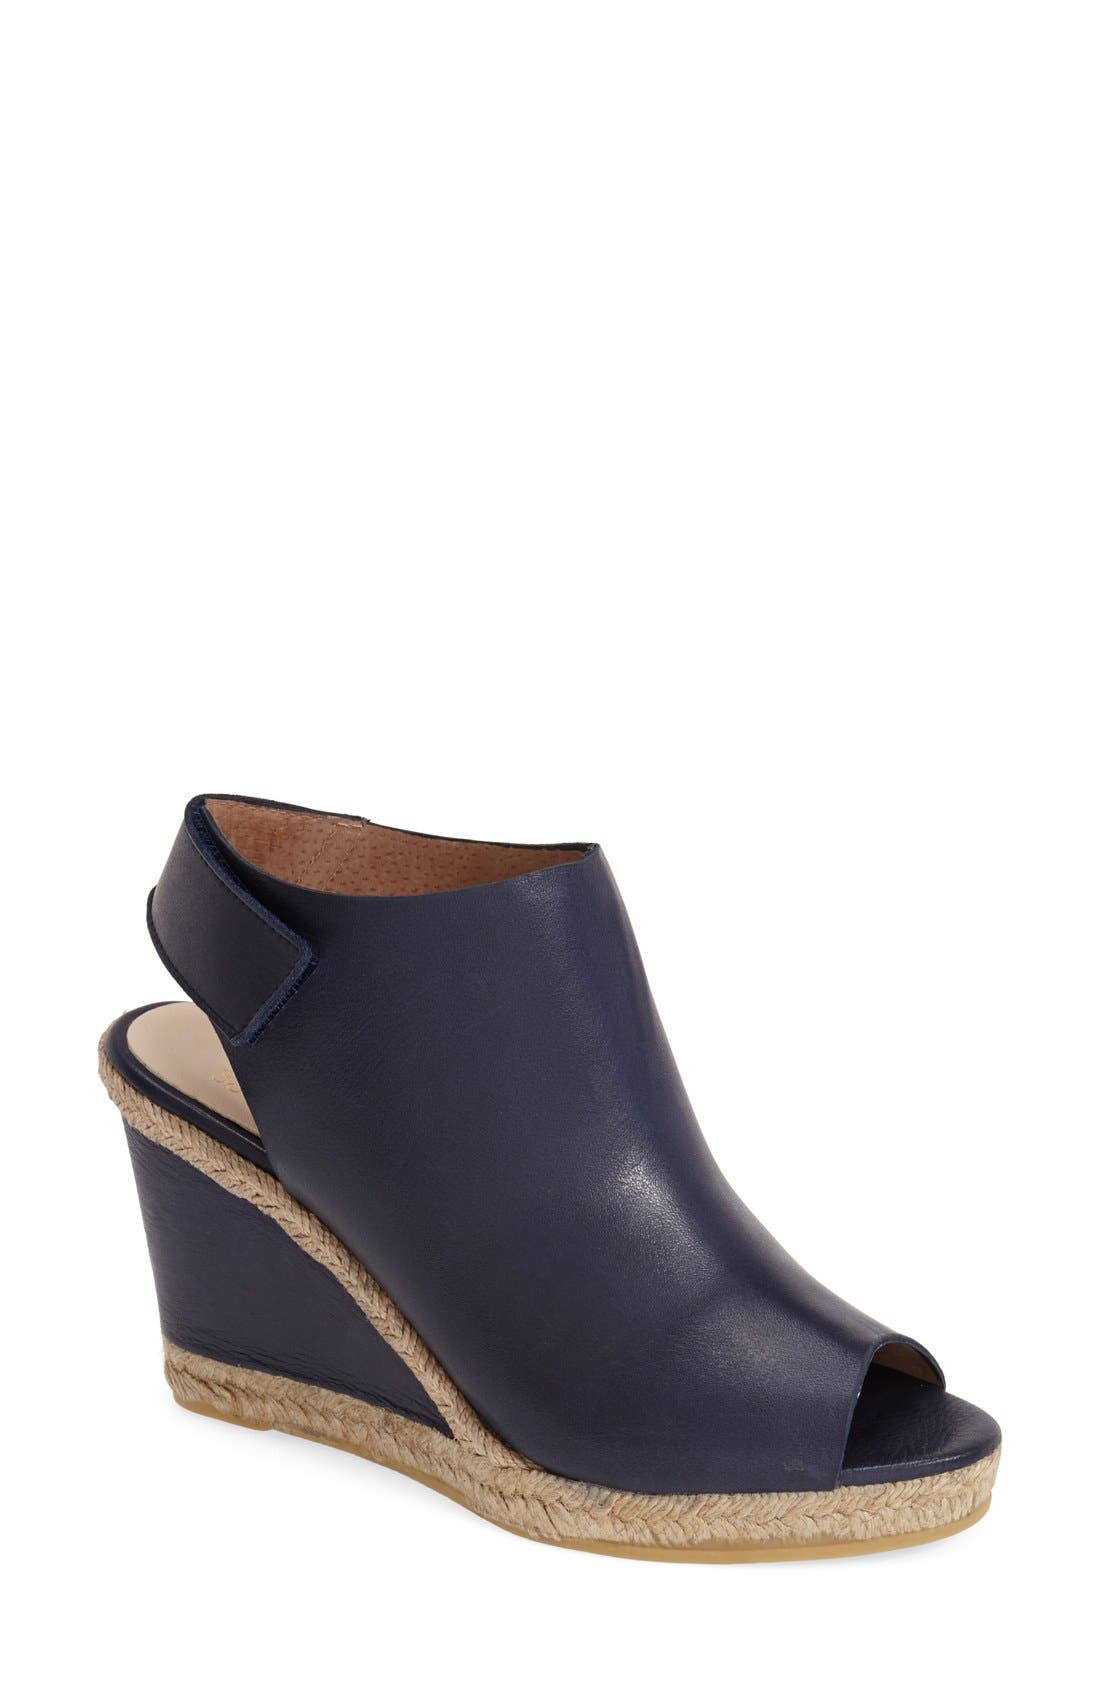 Alternate Image 1 Selected - André Assous 'Beatrice' Wedge Sandal (Women)